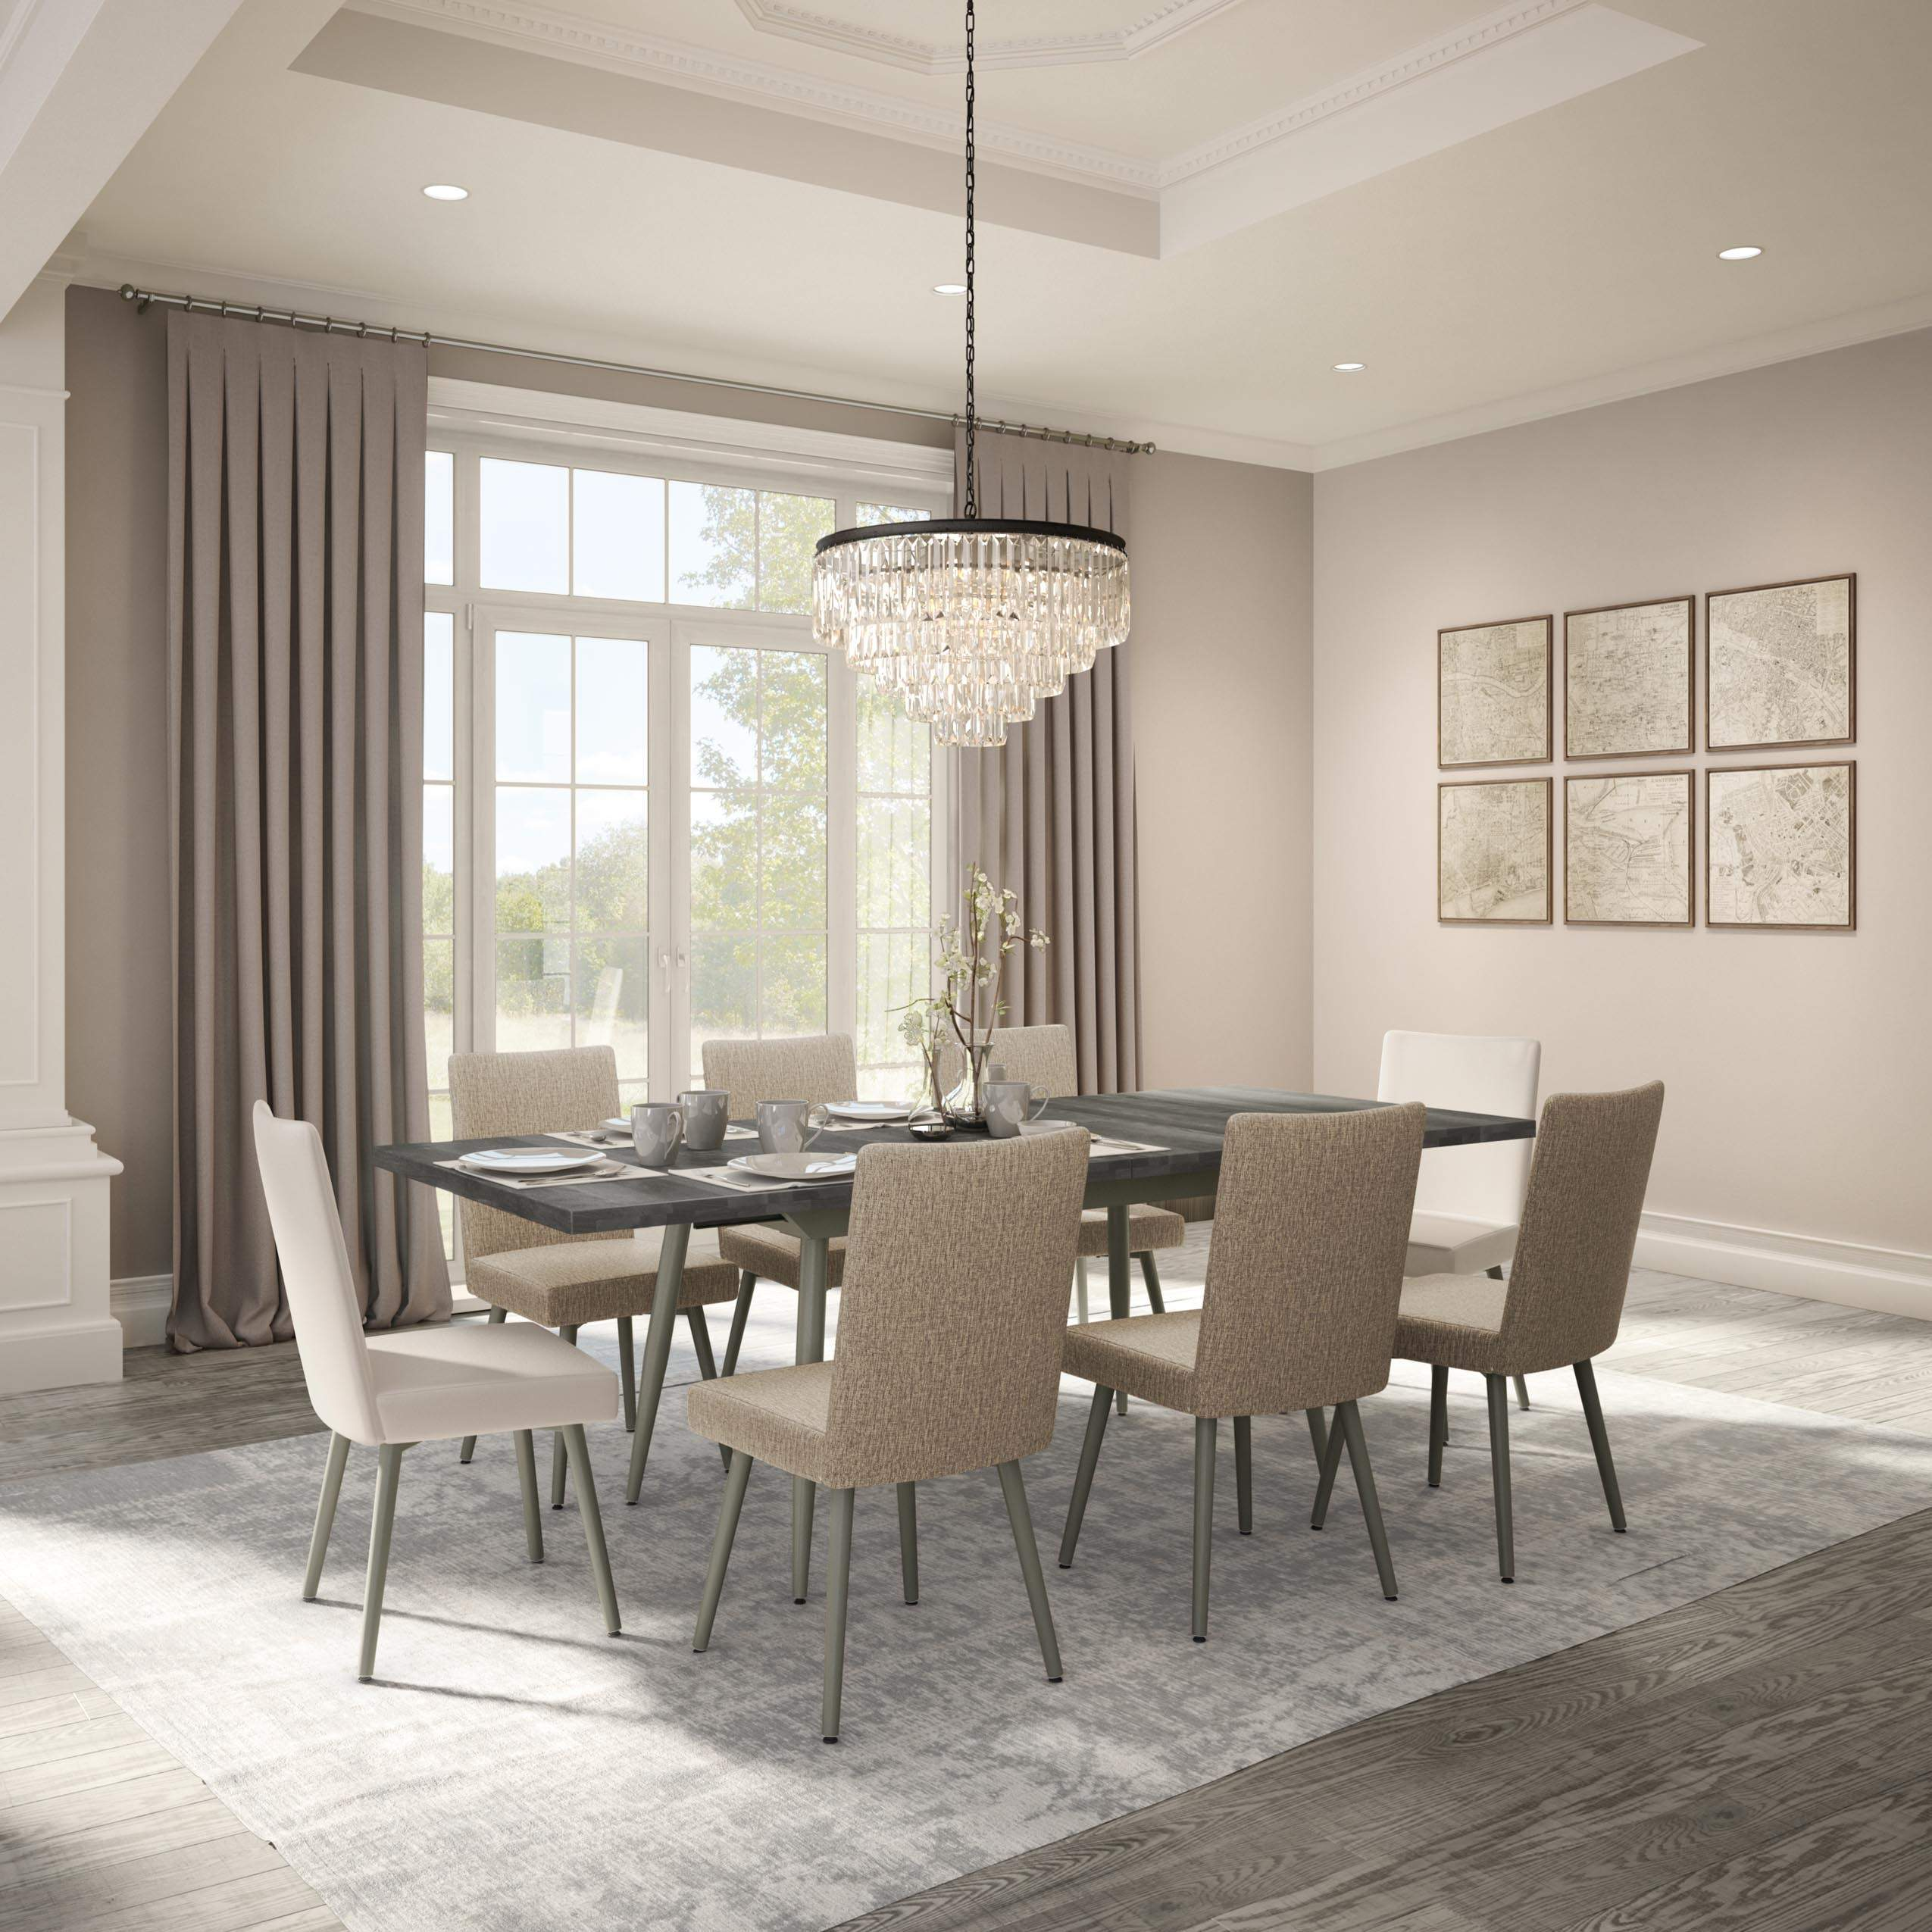 Webber Luxury Dining Room Furniture - Tables & Chairs in ...